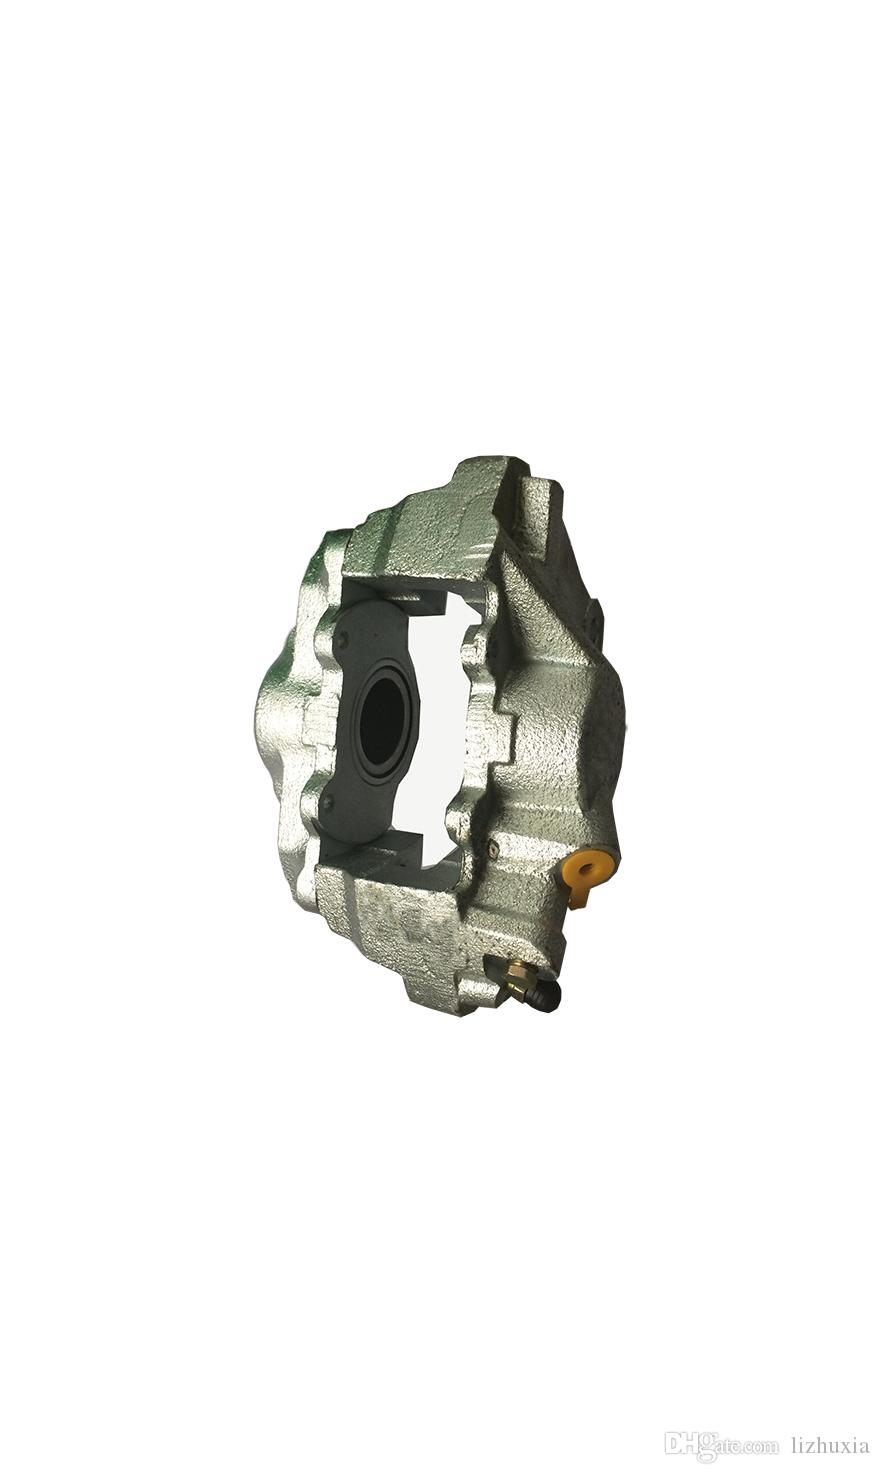 2018 Auto Parts Brake Caliper For Land Rover Rtc5889 From Lizhuxia